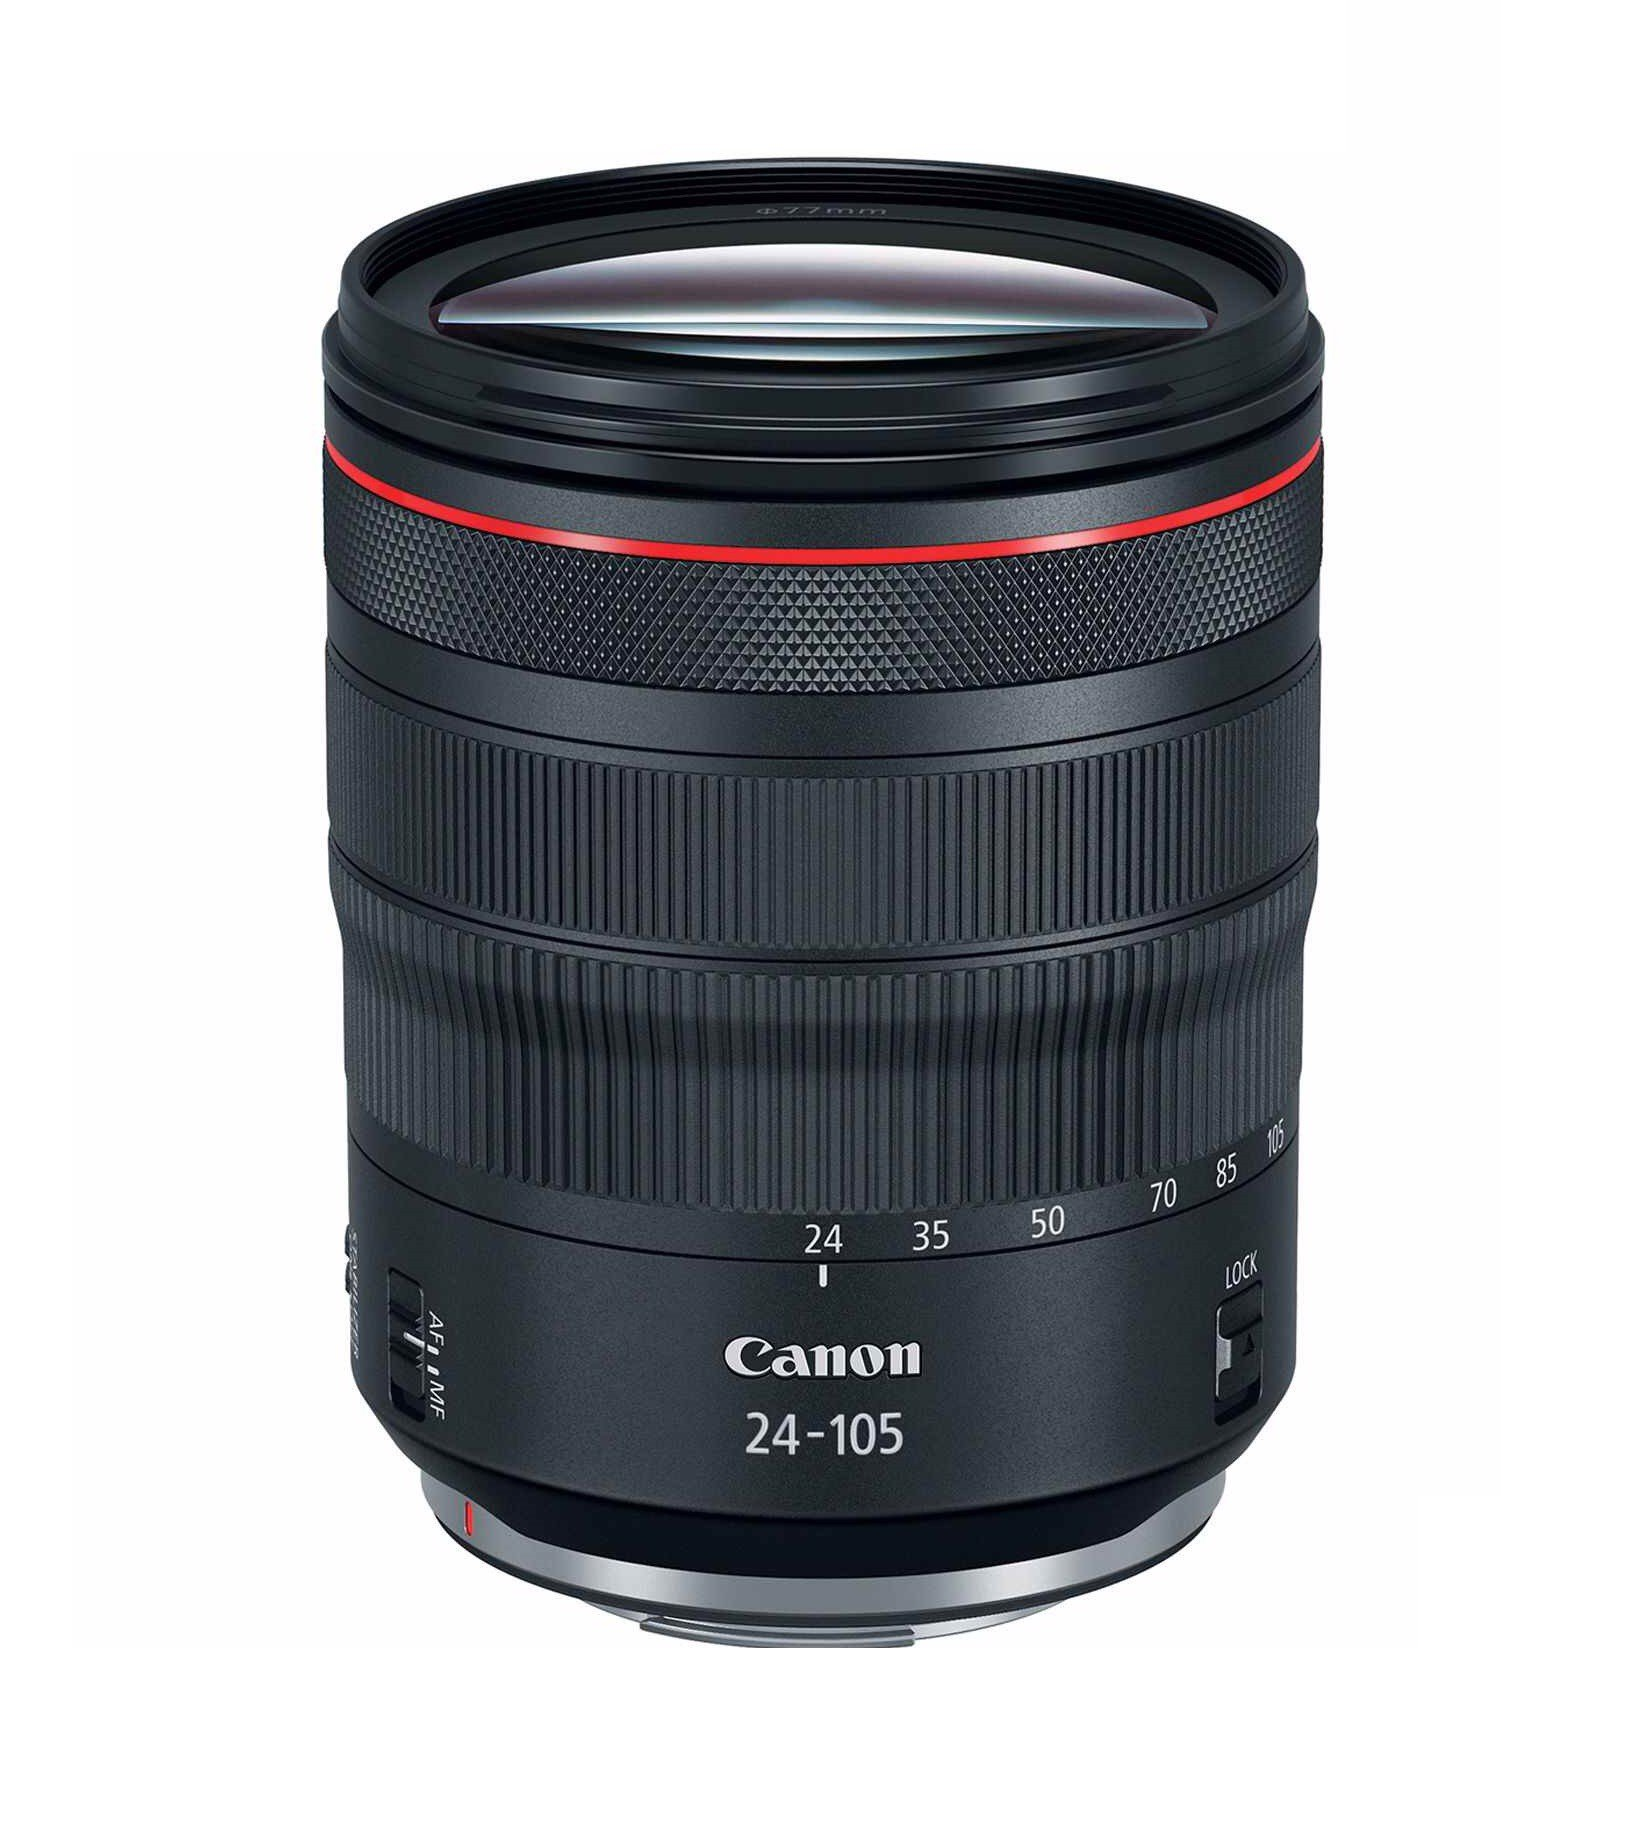 Canon RF 24-105mm F4 L IS